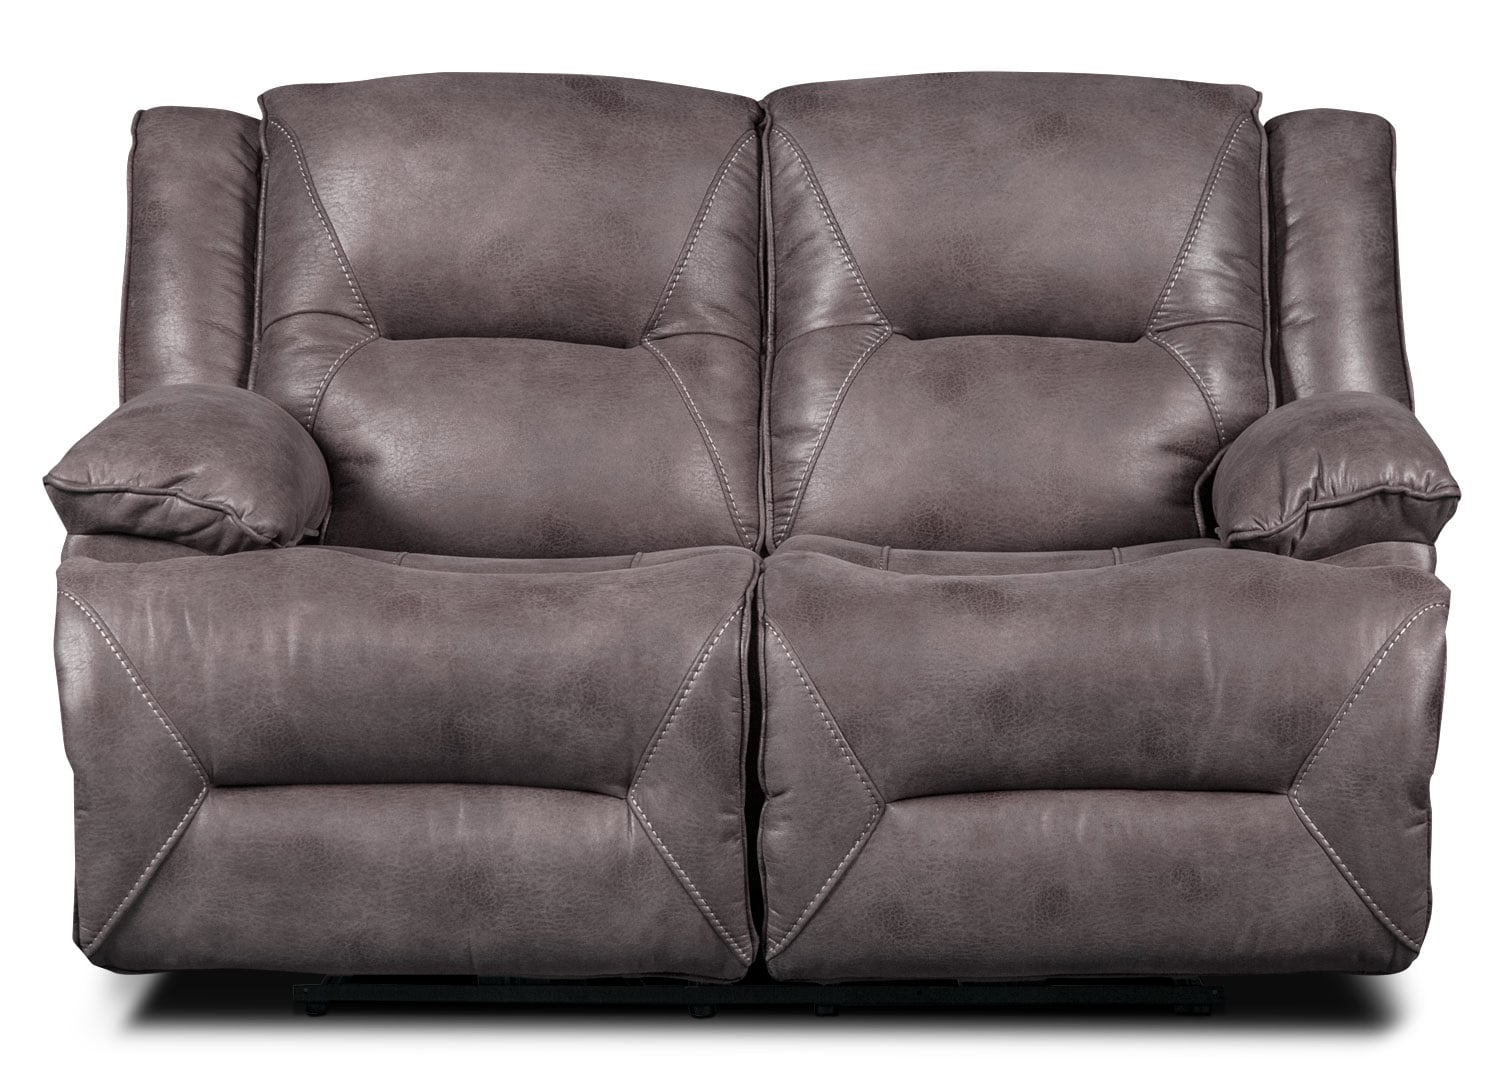 Kitchener Home Furniture Loveseats The Brick